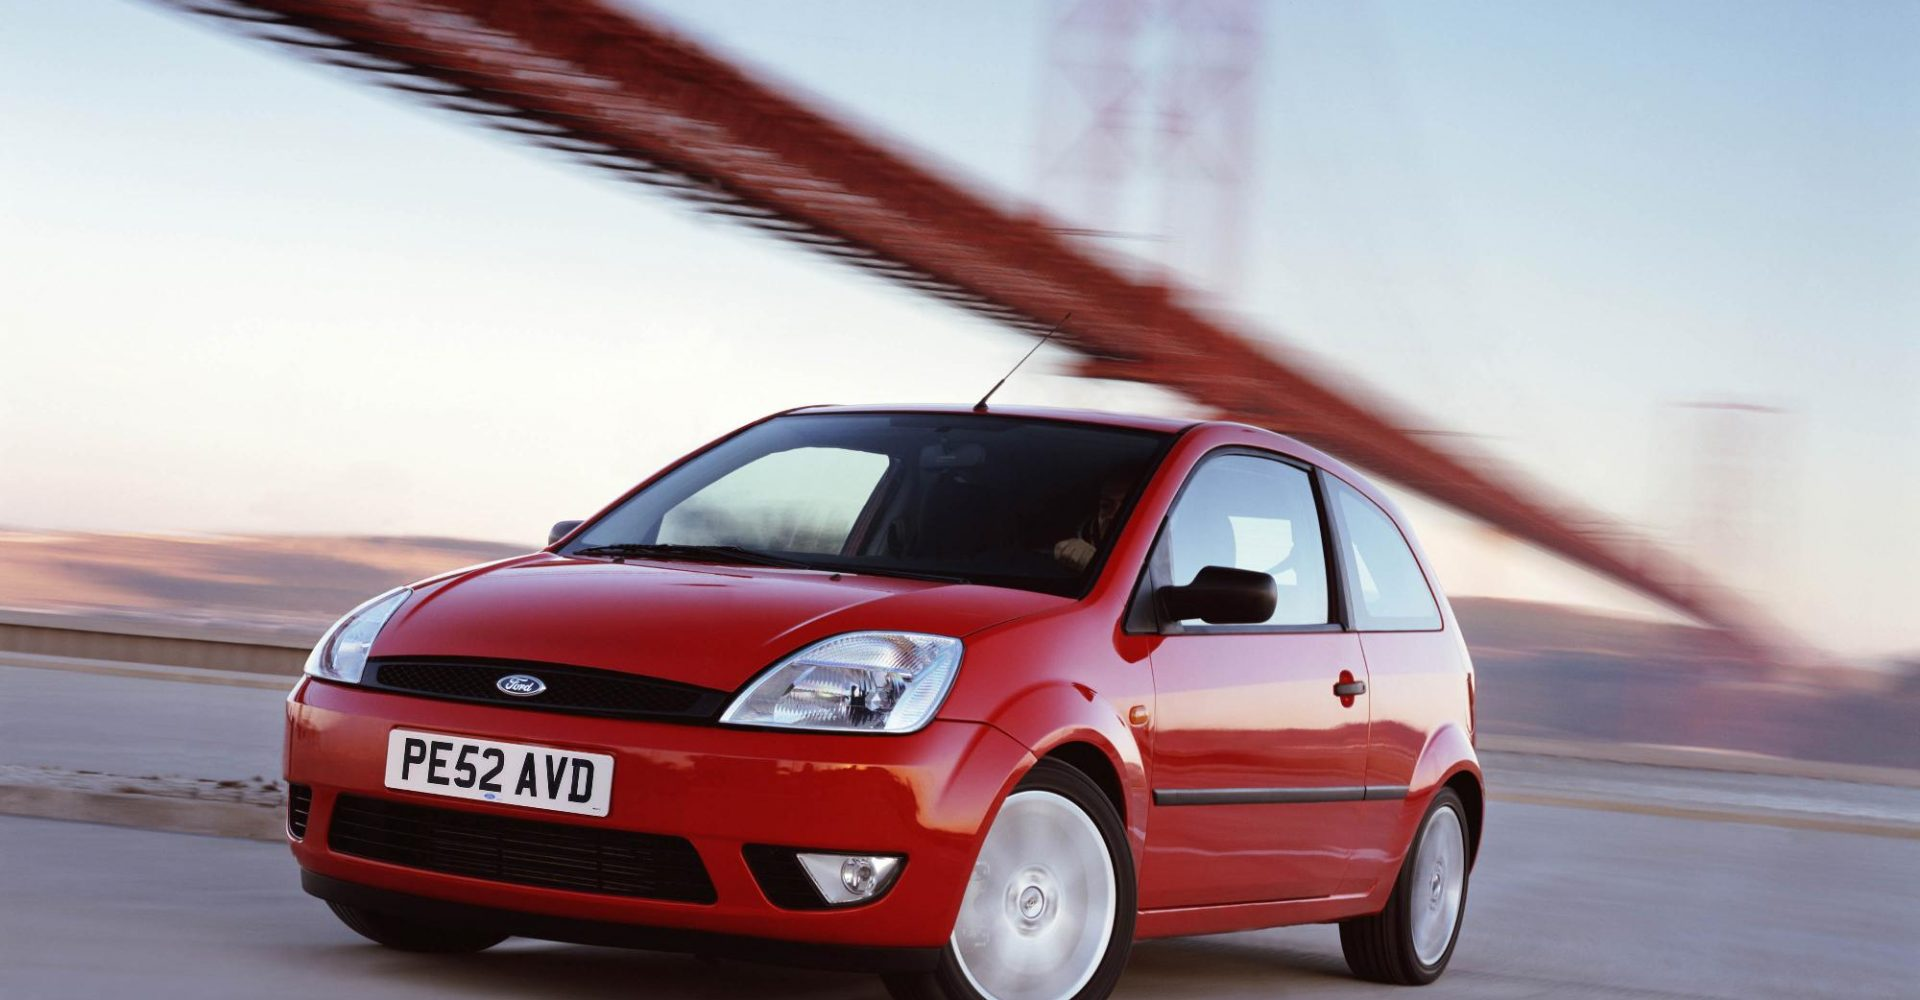 The 6 best first cars to buy on a budget